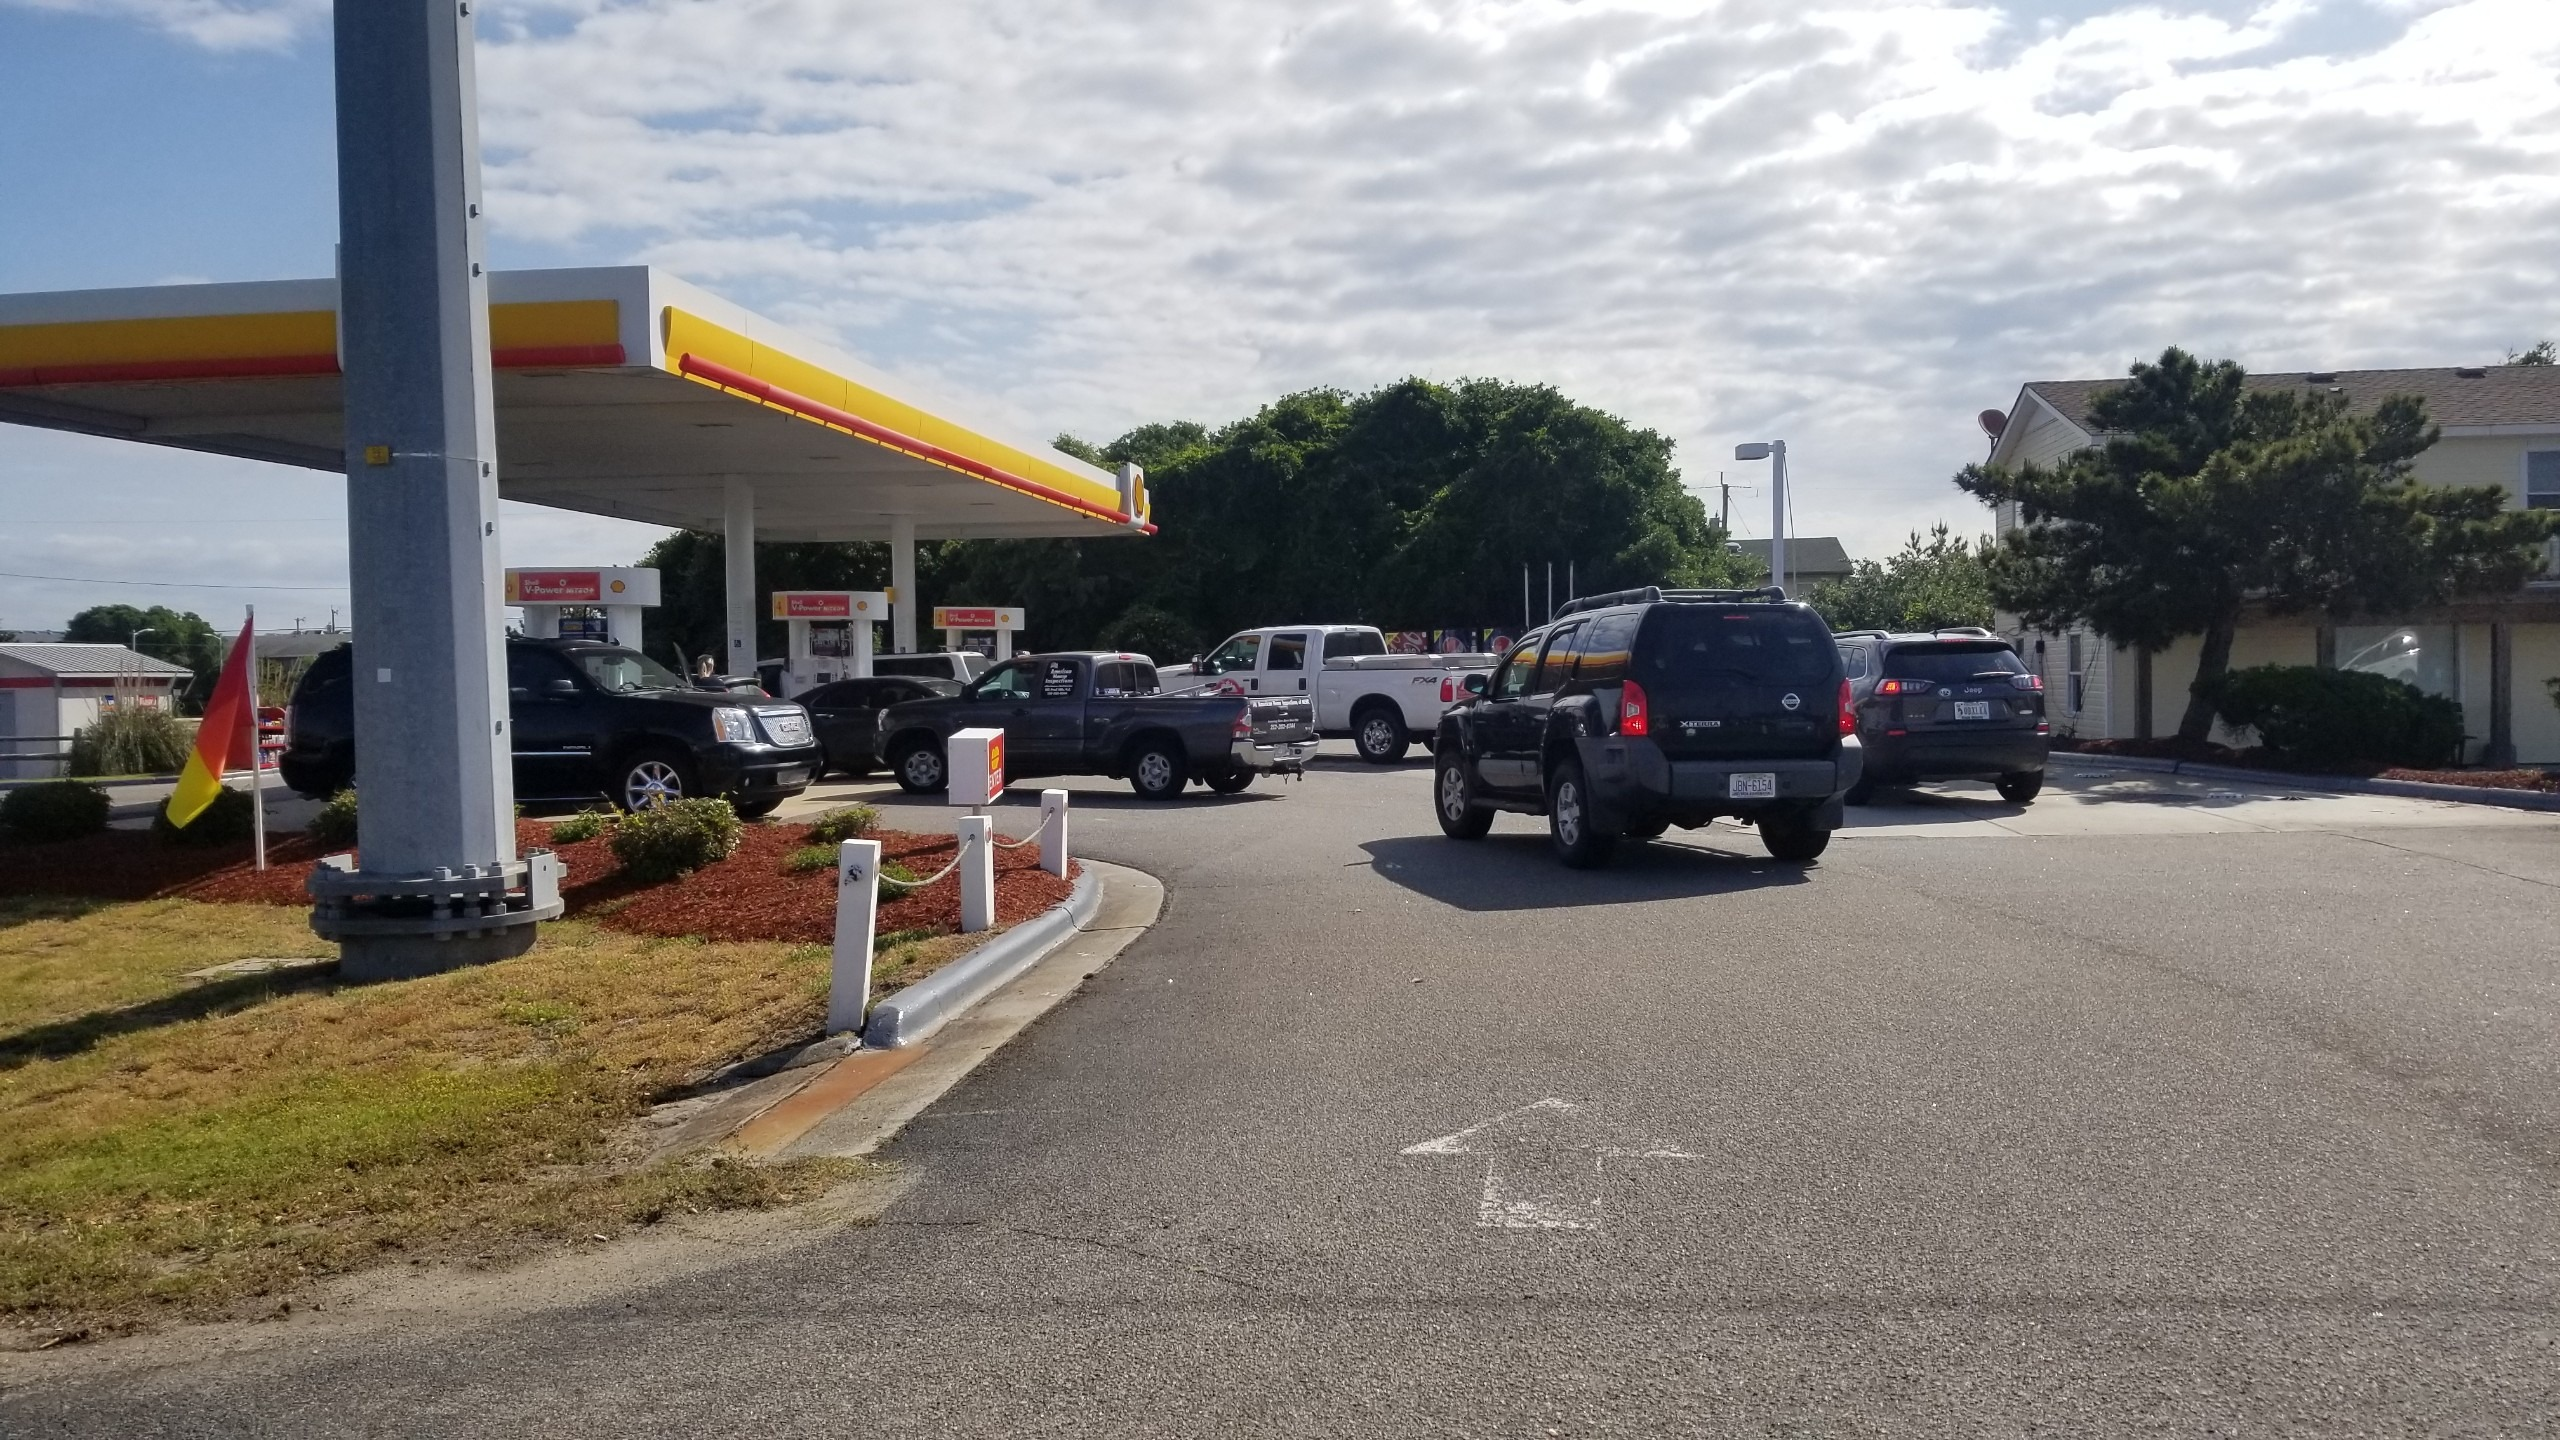 Panic buying causes long lines, rising prices at gas stations across the Outer Banks - OBXToday.com